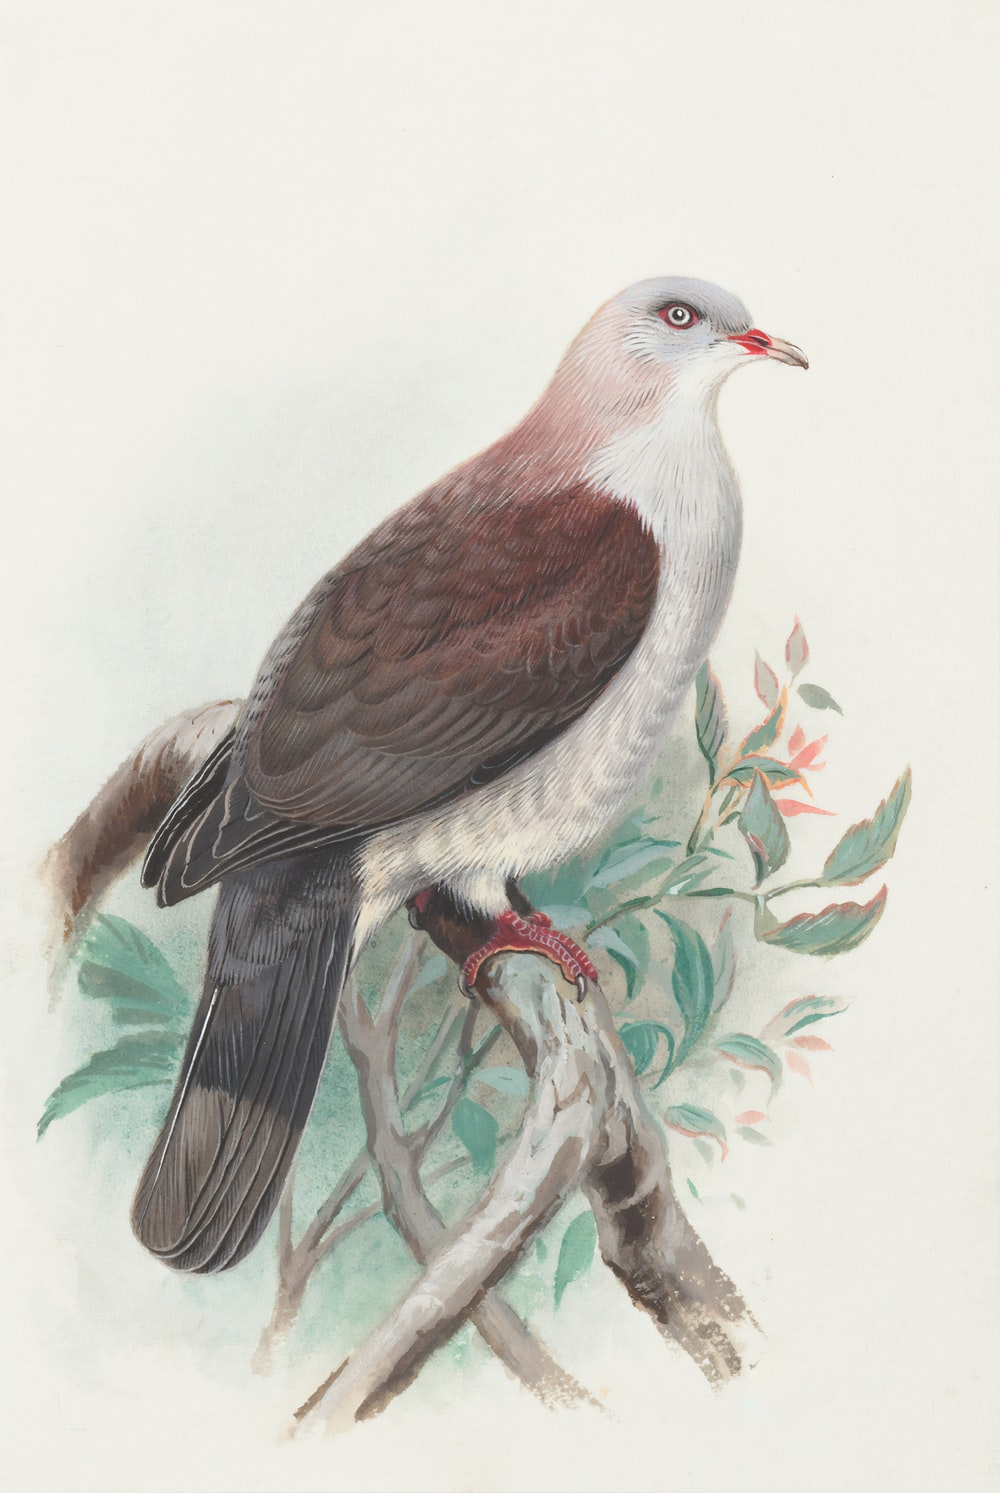 brown and white bird on tree branch painting